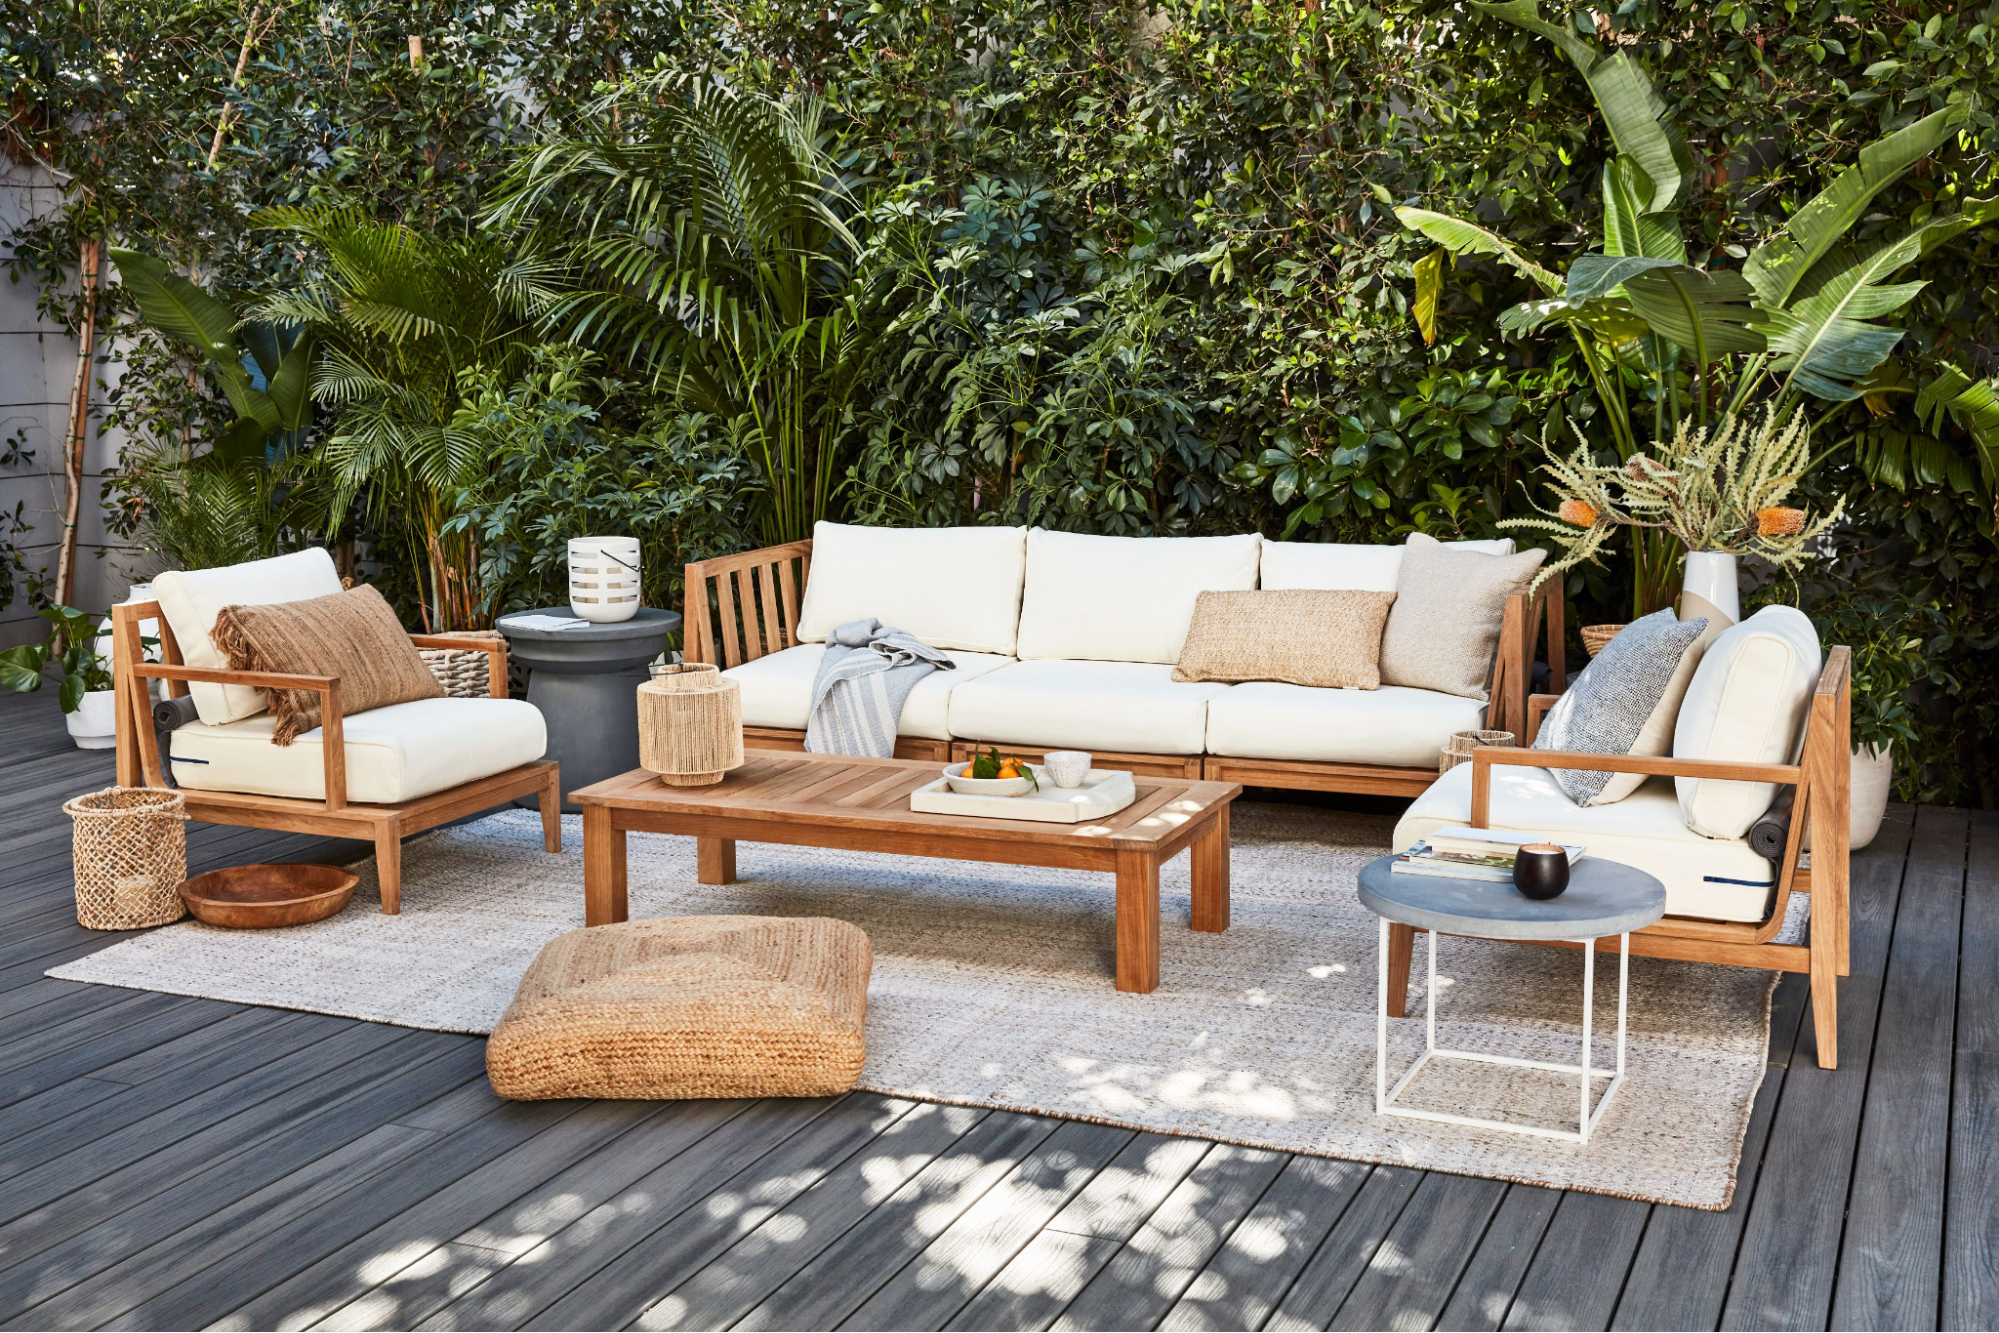 Teak outdoor furniture on a large outdoor rug